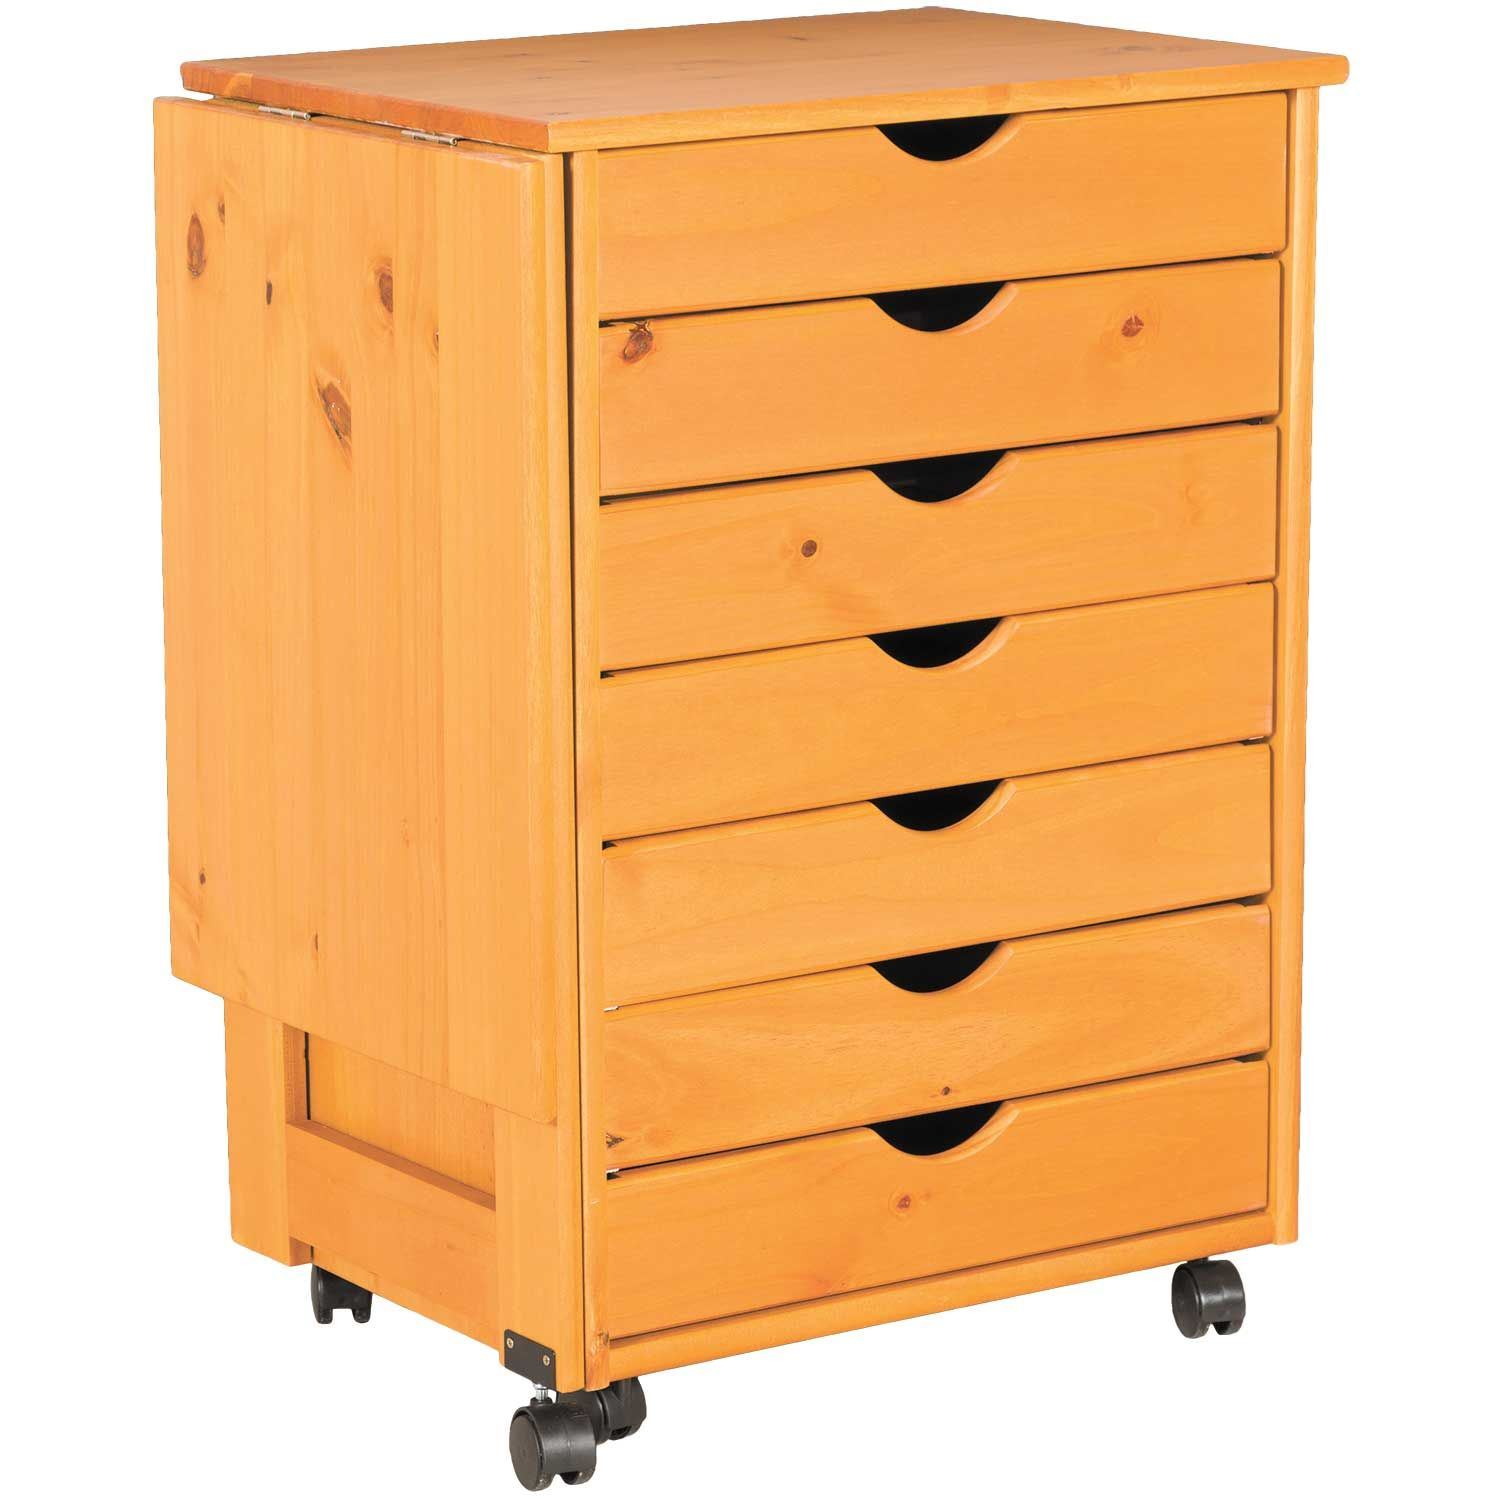 Drop leaf 7 drawer roll cart 76178 home or office for Rolling craft cart with drawers